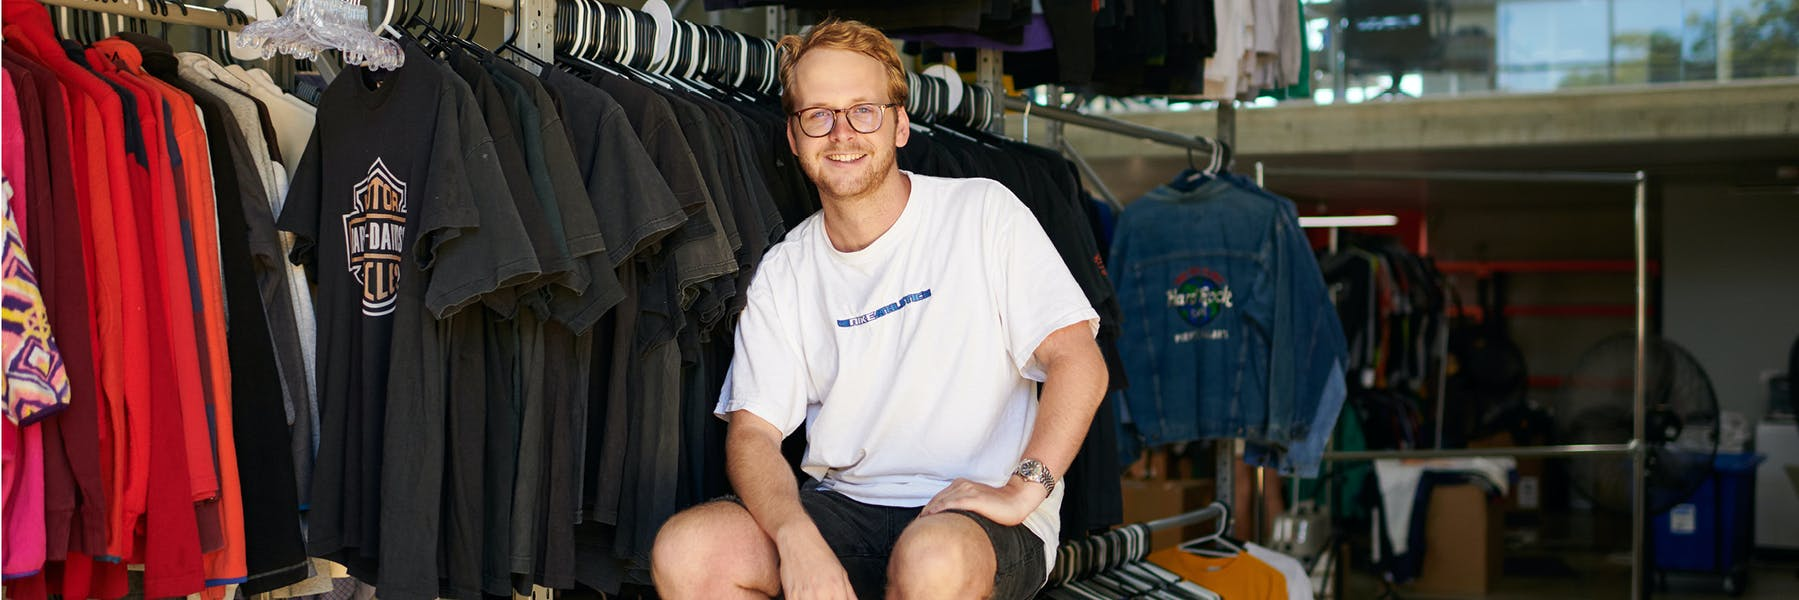 Restated Vintage founder Ben Randall at the store's warehouse